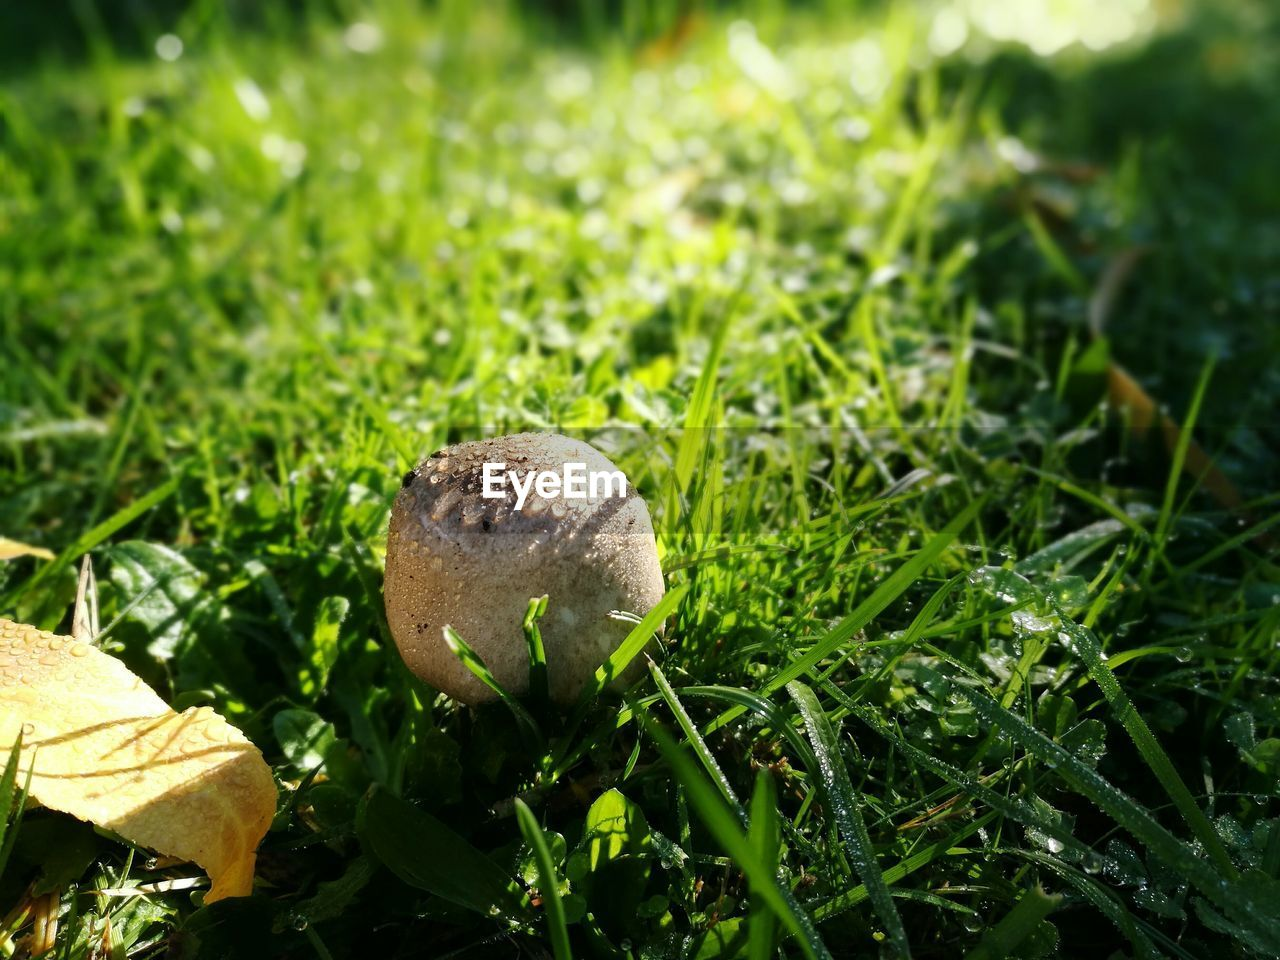 mushroom, nature, close-up, growth, grass, no people, outdoors, fungus, toadstool, day, beauty in nature, fragility, freshness, fly agaric